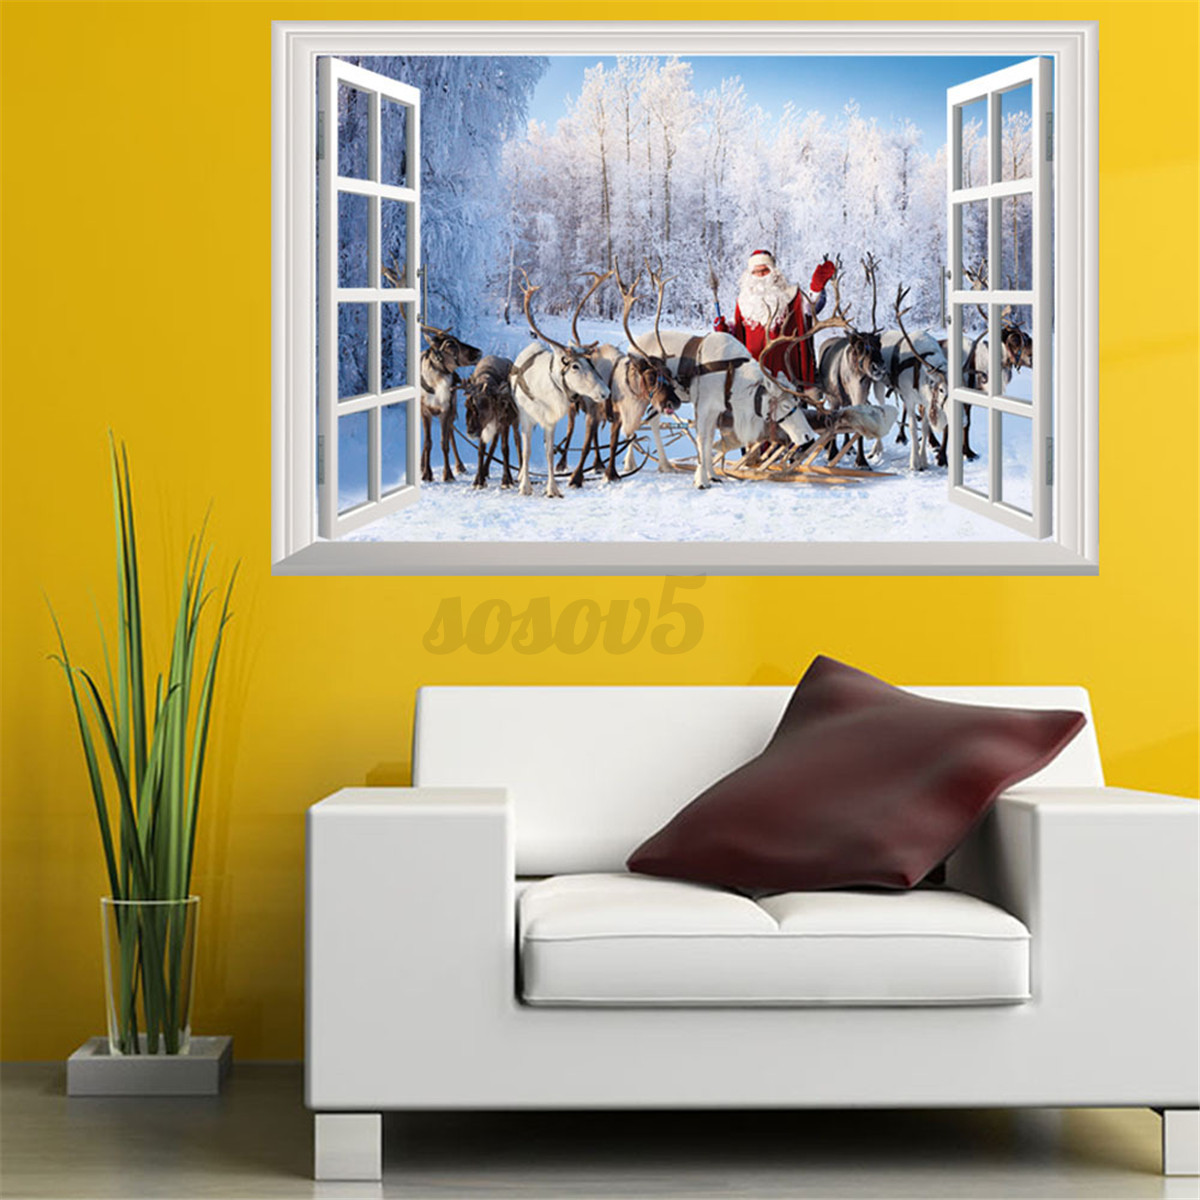 3d Home Decor 3d Window View Wall Stickers Xmas Santa Claus Elk Deer